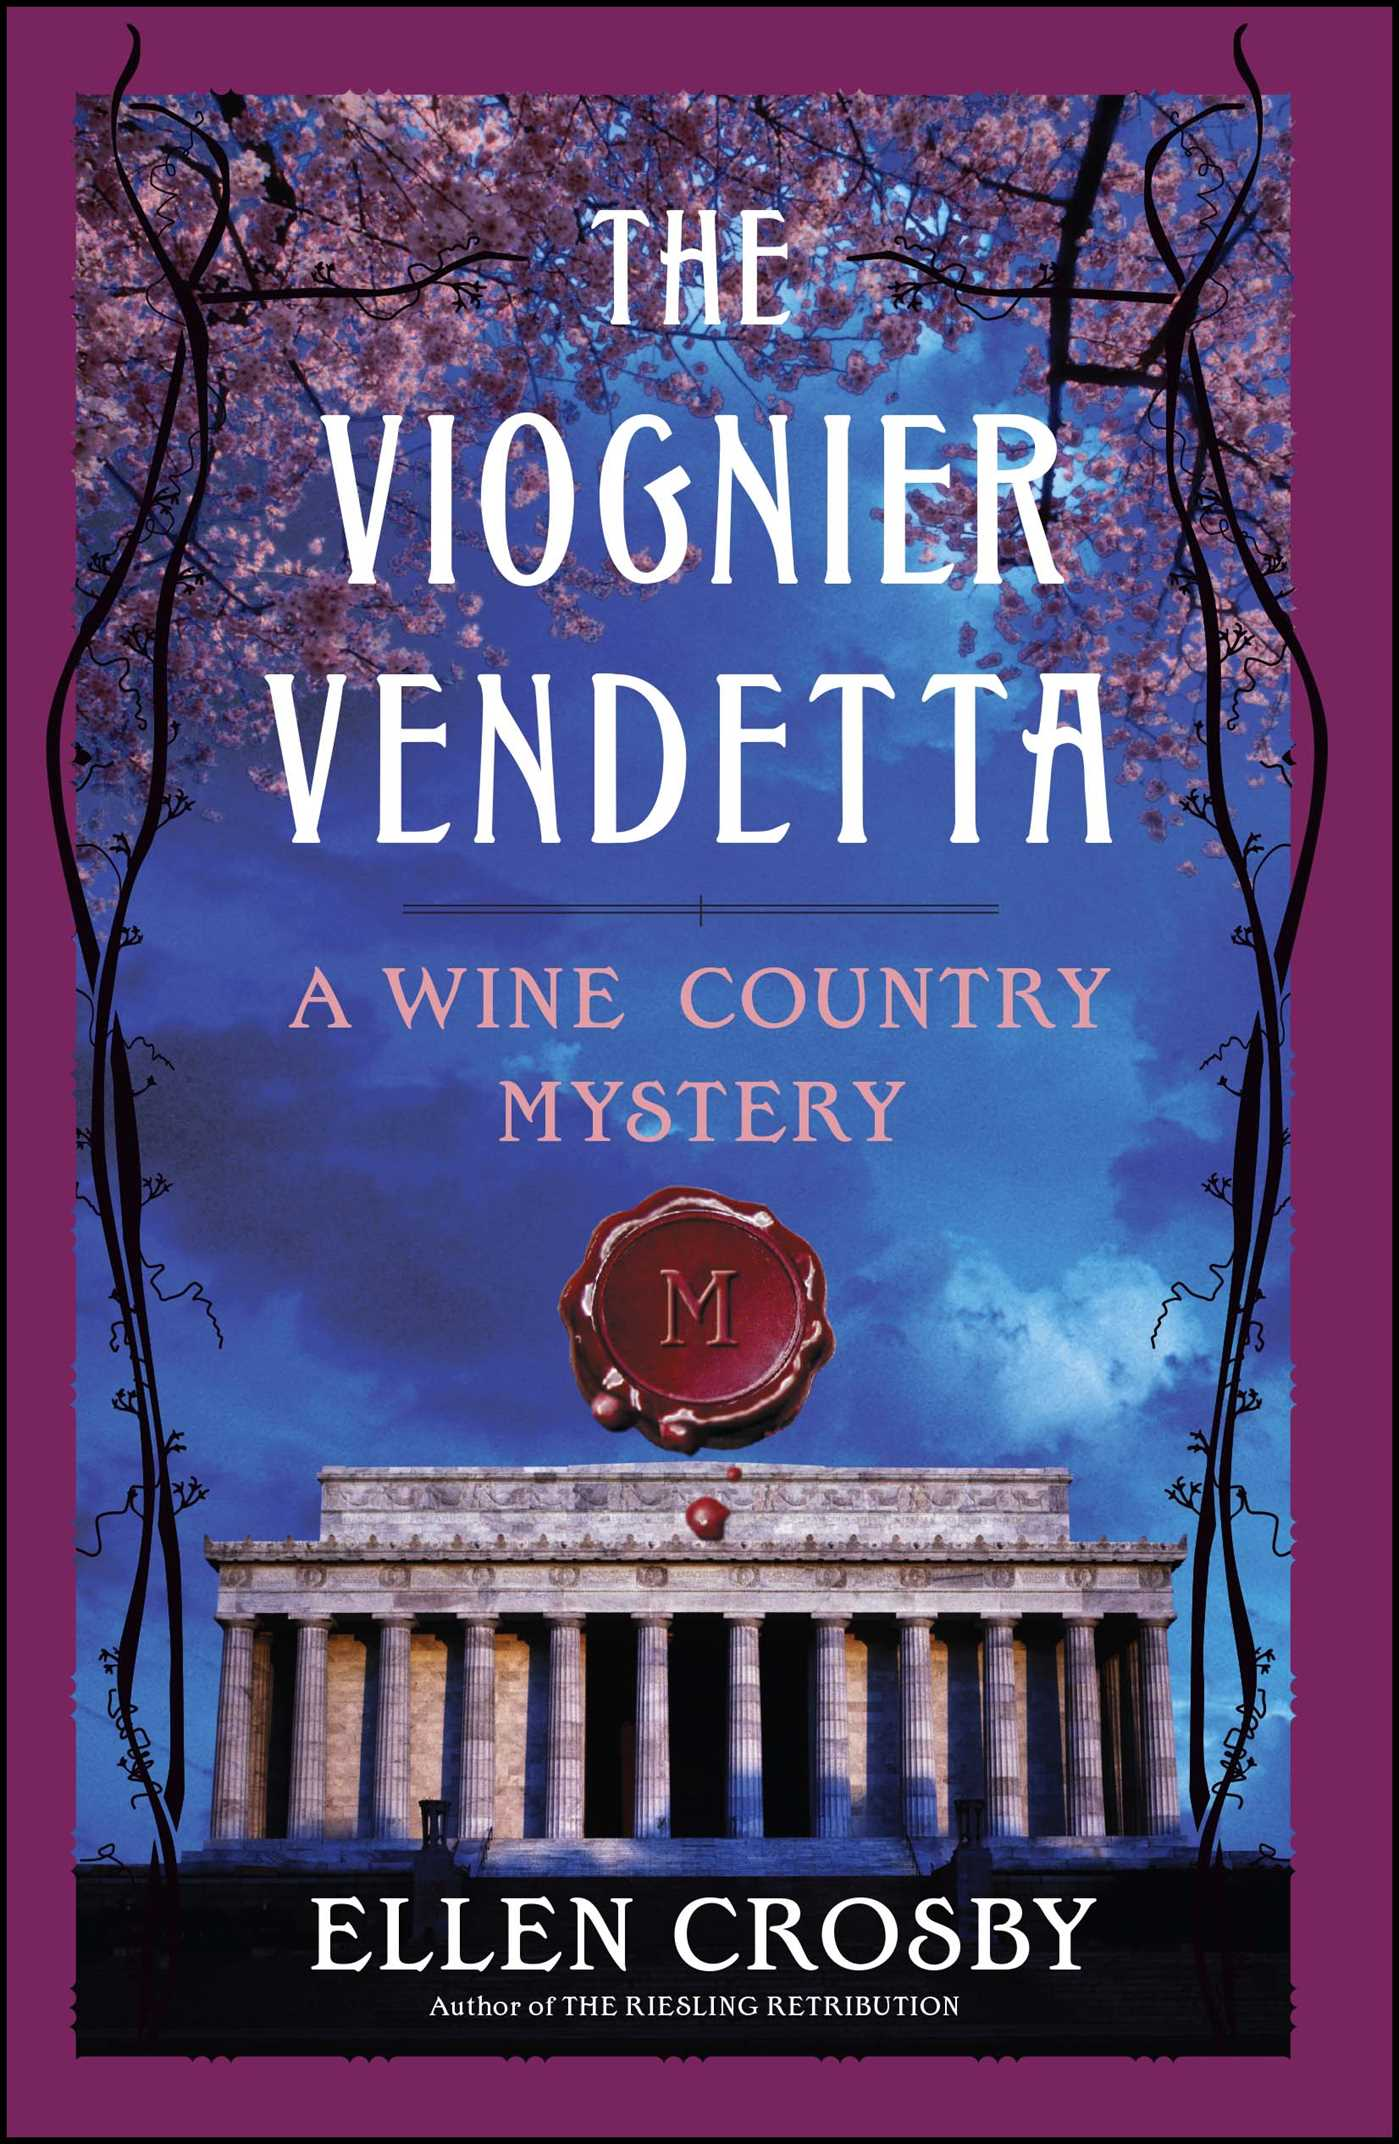 The viognier vendetta 9781439163870 hr